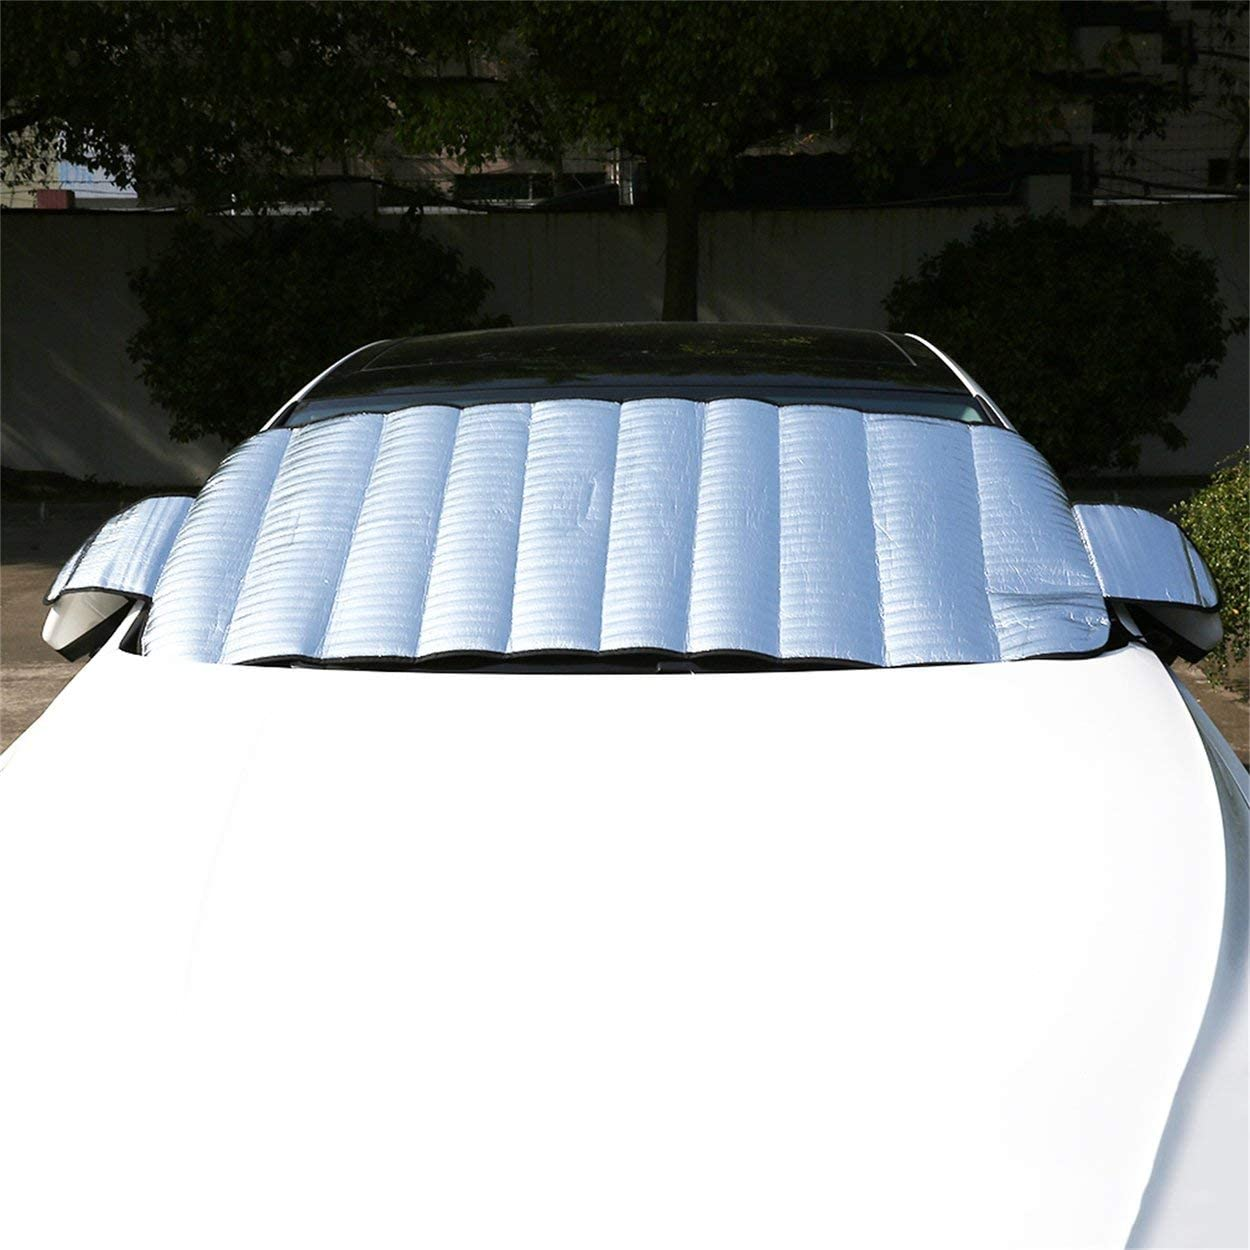 Tree-on-Life Practical Car Windscreen Cover Anti Ice Snow Frost Shield Dust Protection Heat Sun Shade Ideally for Front Car Windshield